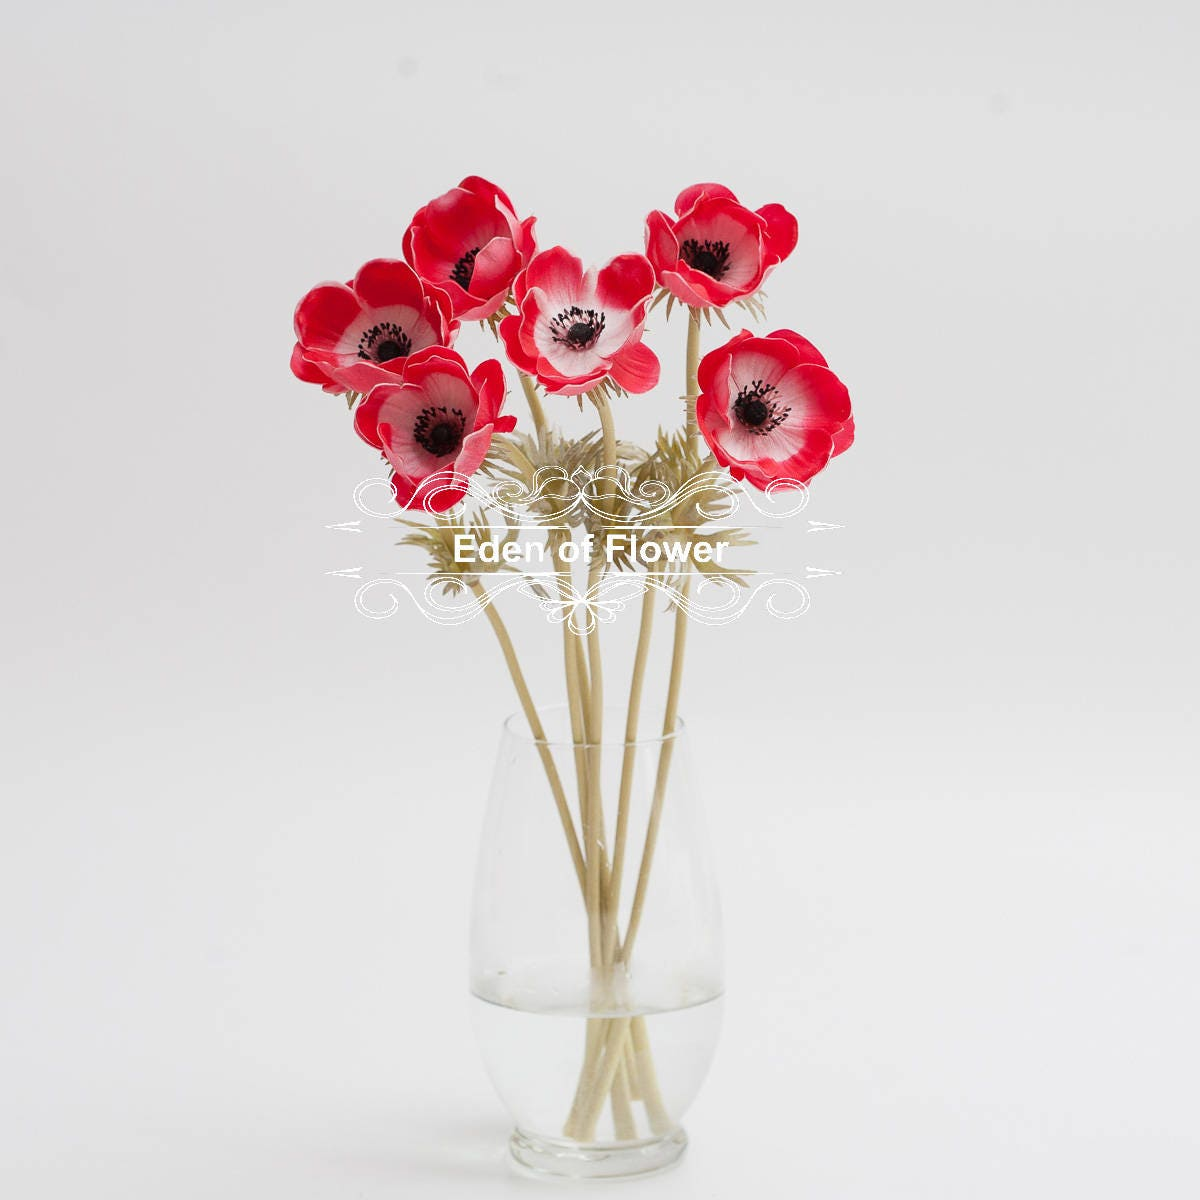 Red Anemones Poppy Real Touch Flowers Black Purple Center for ...